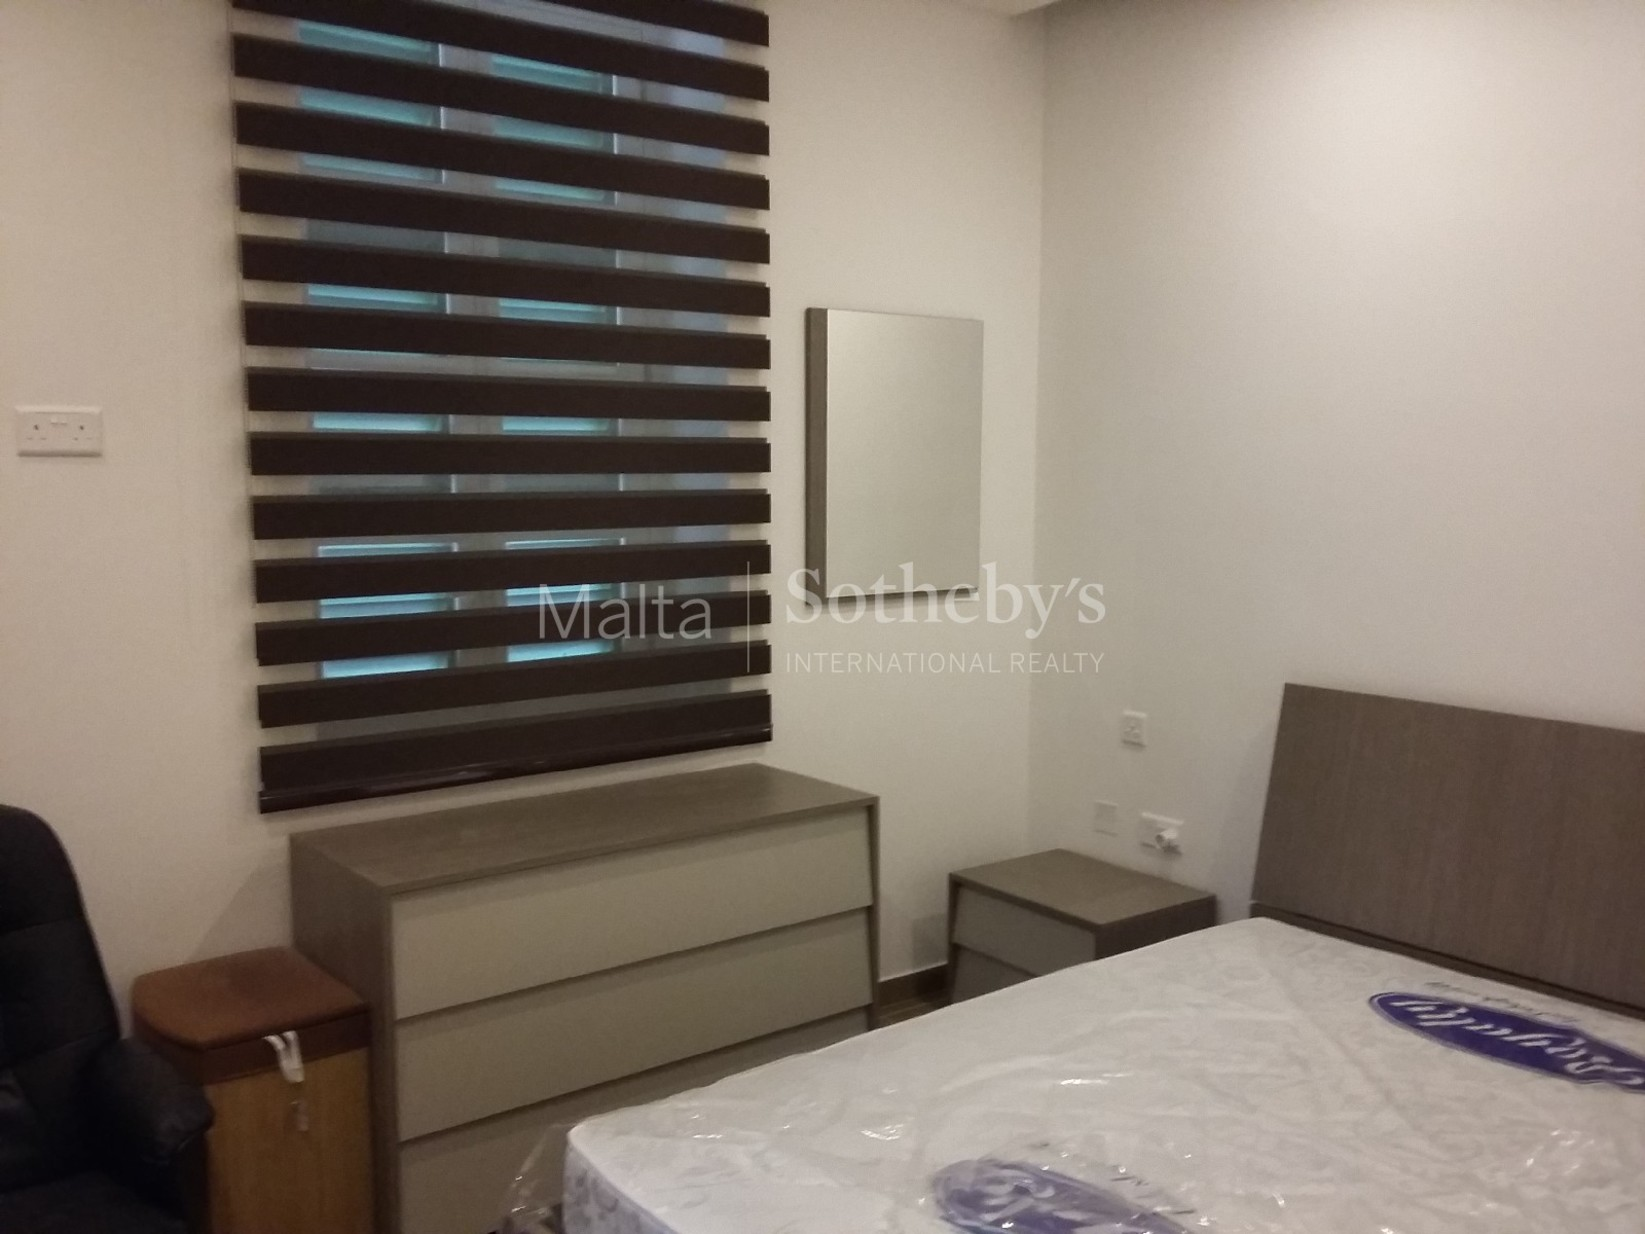 2 bed Apartment For Rent in Valletta, Valletta - thumb 3